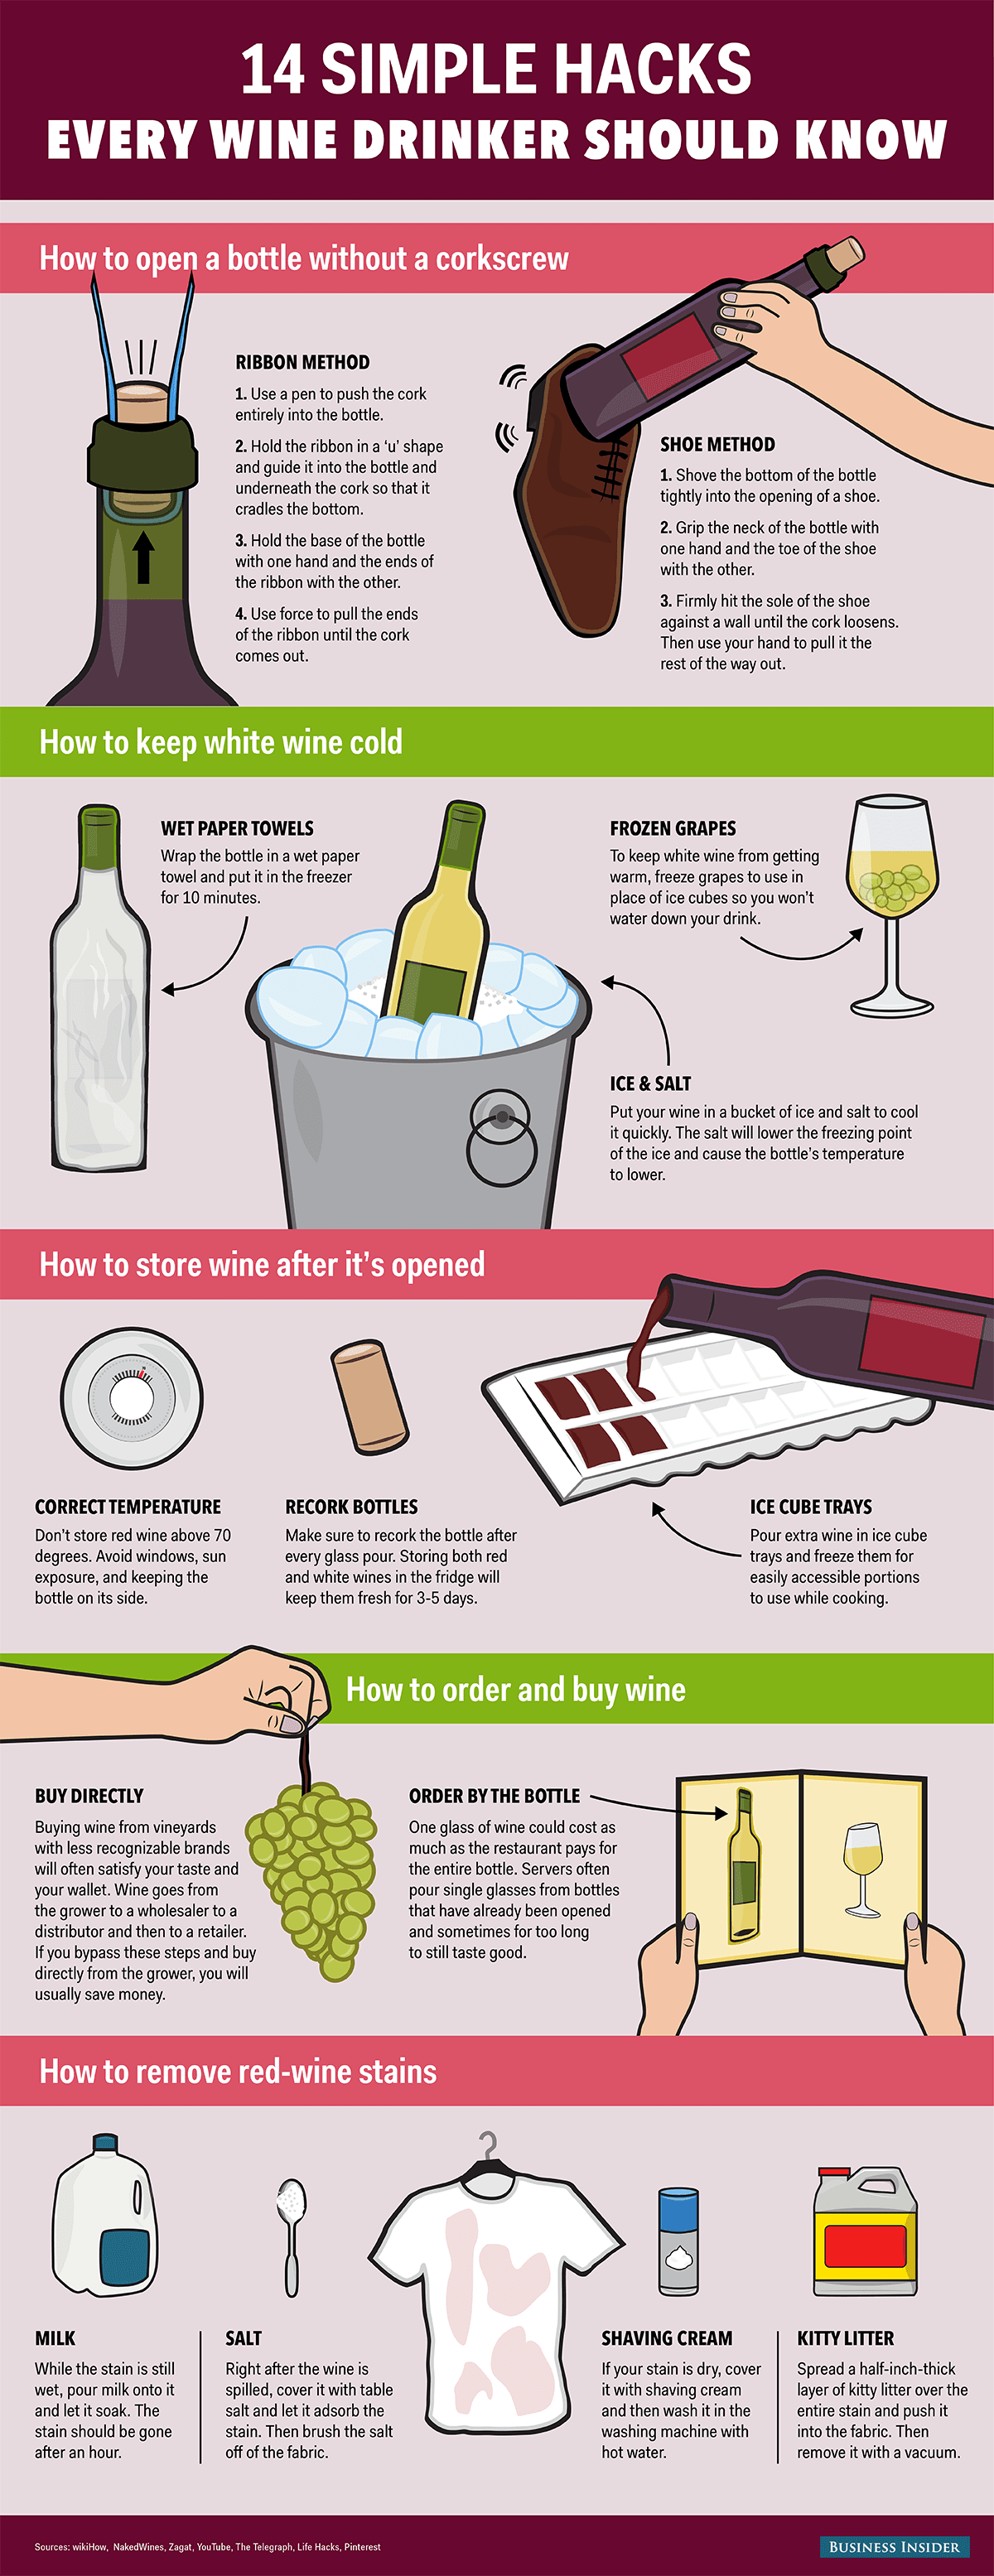 graphics winehacks